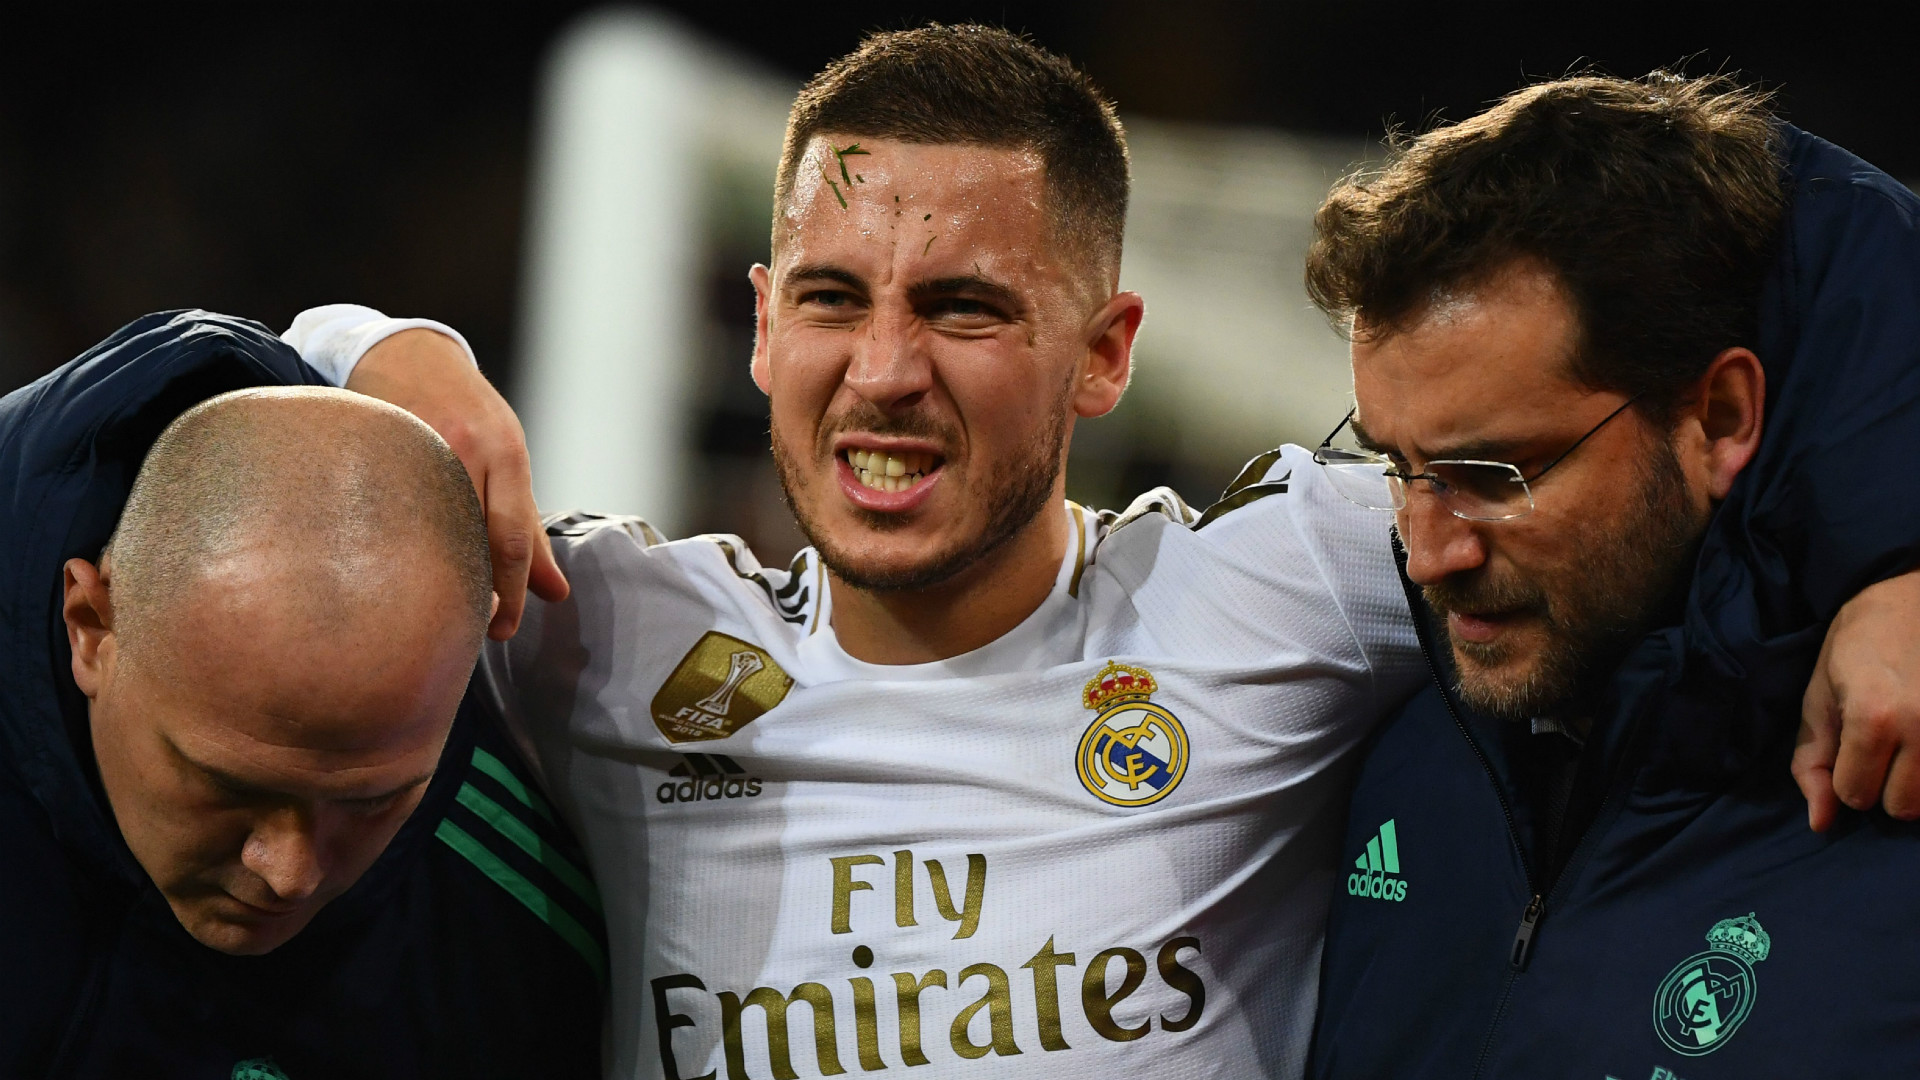 Hazard working harder than ever to regain full fitness as he aims to repay Zidane & Real Madrid